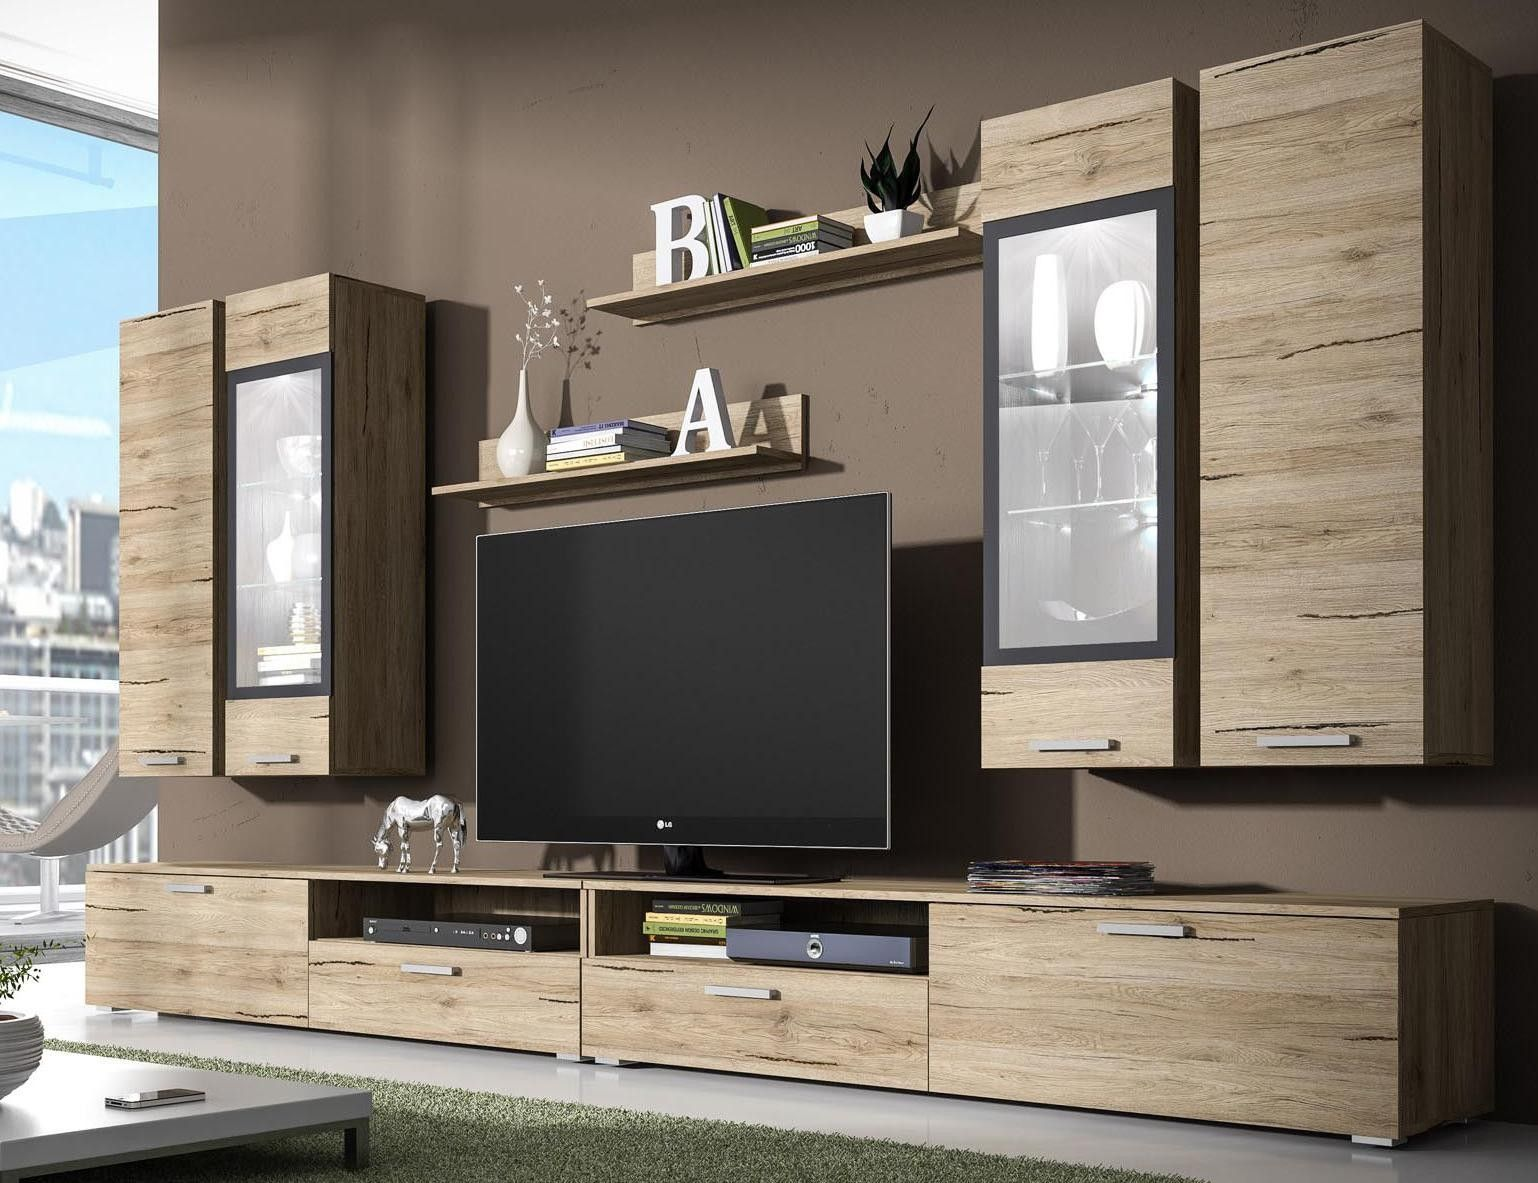 Ensemble Meuble Tv Bois - Ensemble Meuble Tv Mural Nova Meuble Tv Design Pas Cher [mjhdah]https://www.hcommehome.com/media/catalog/product/cache/1/thumbnail/9df78eab33525d08d6e5fb8d27136e95/m/e/meuble-tv-bois-ens-m-c-059_zd1.jpg